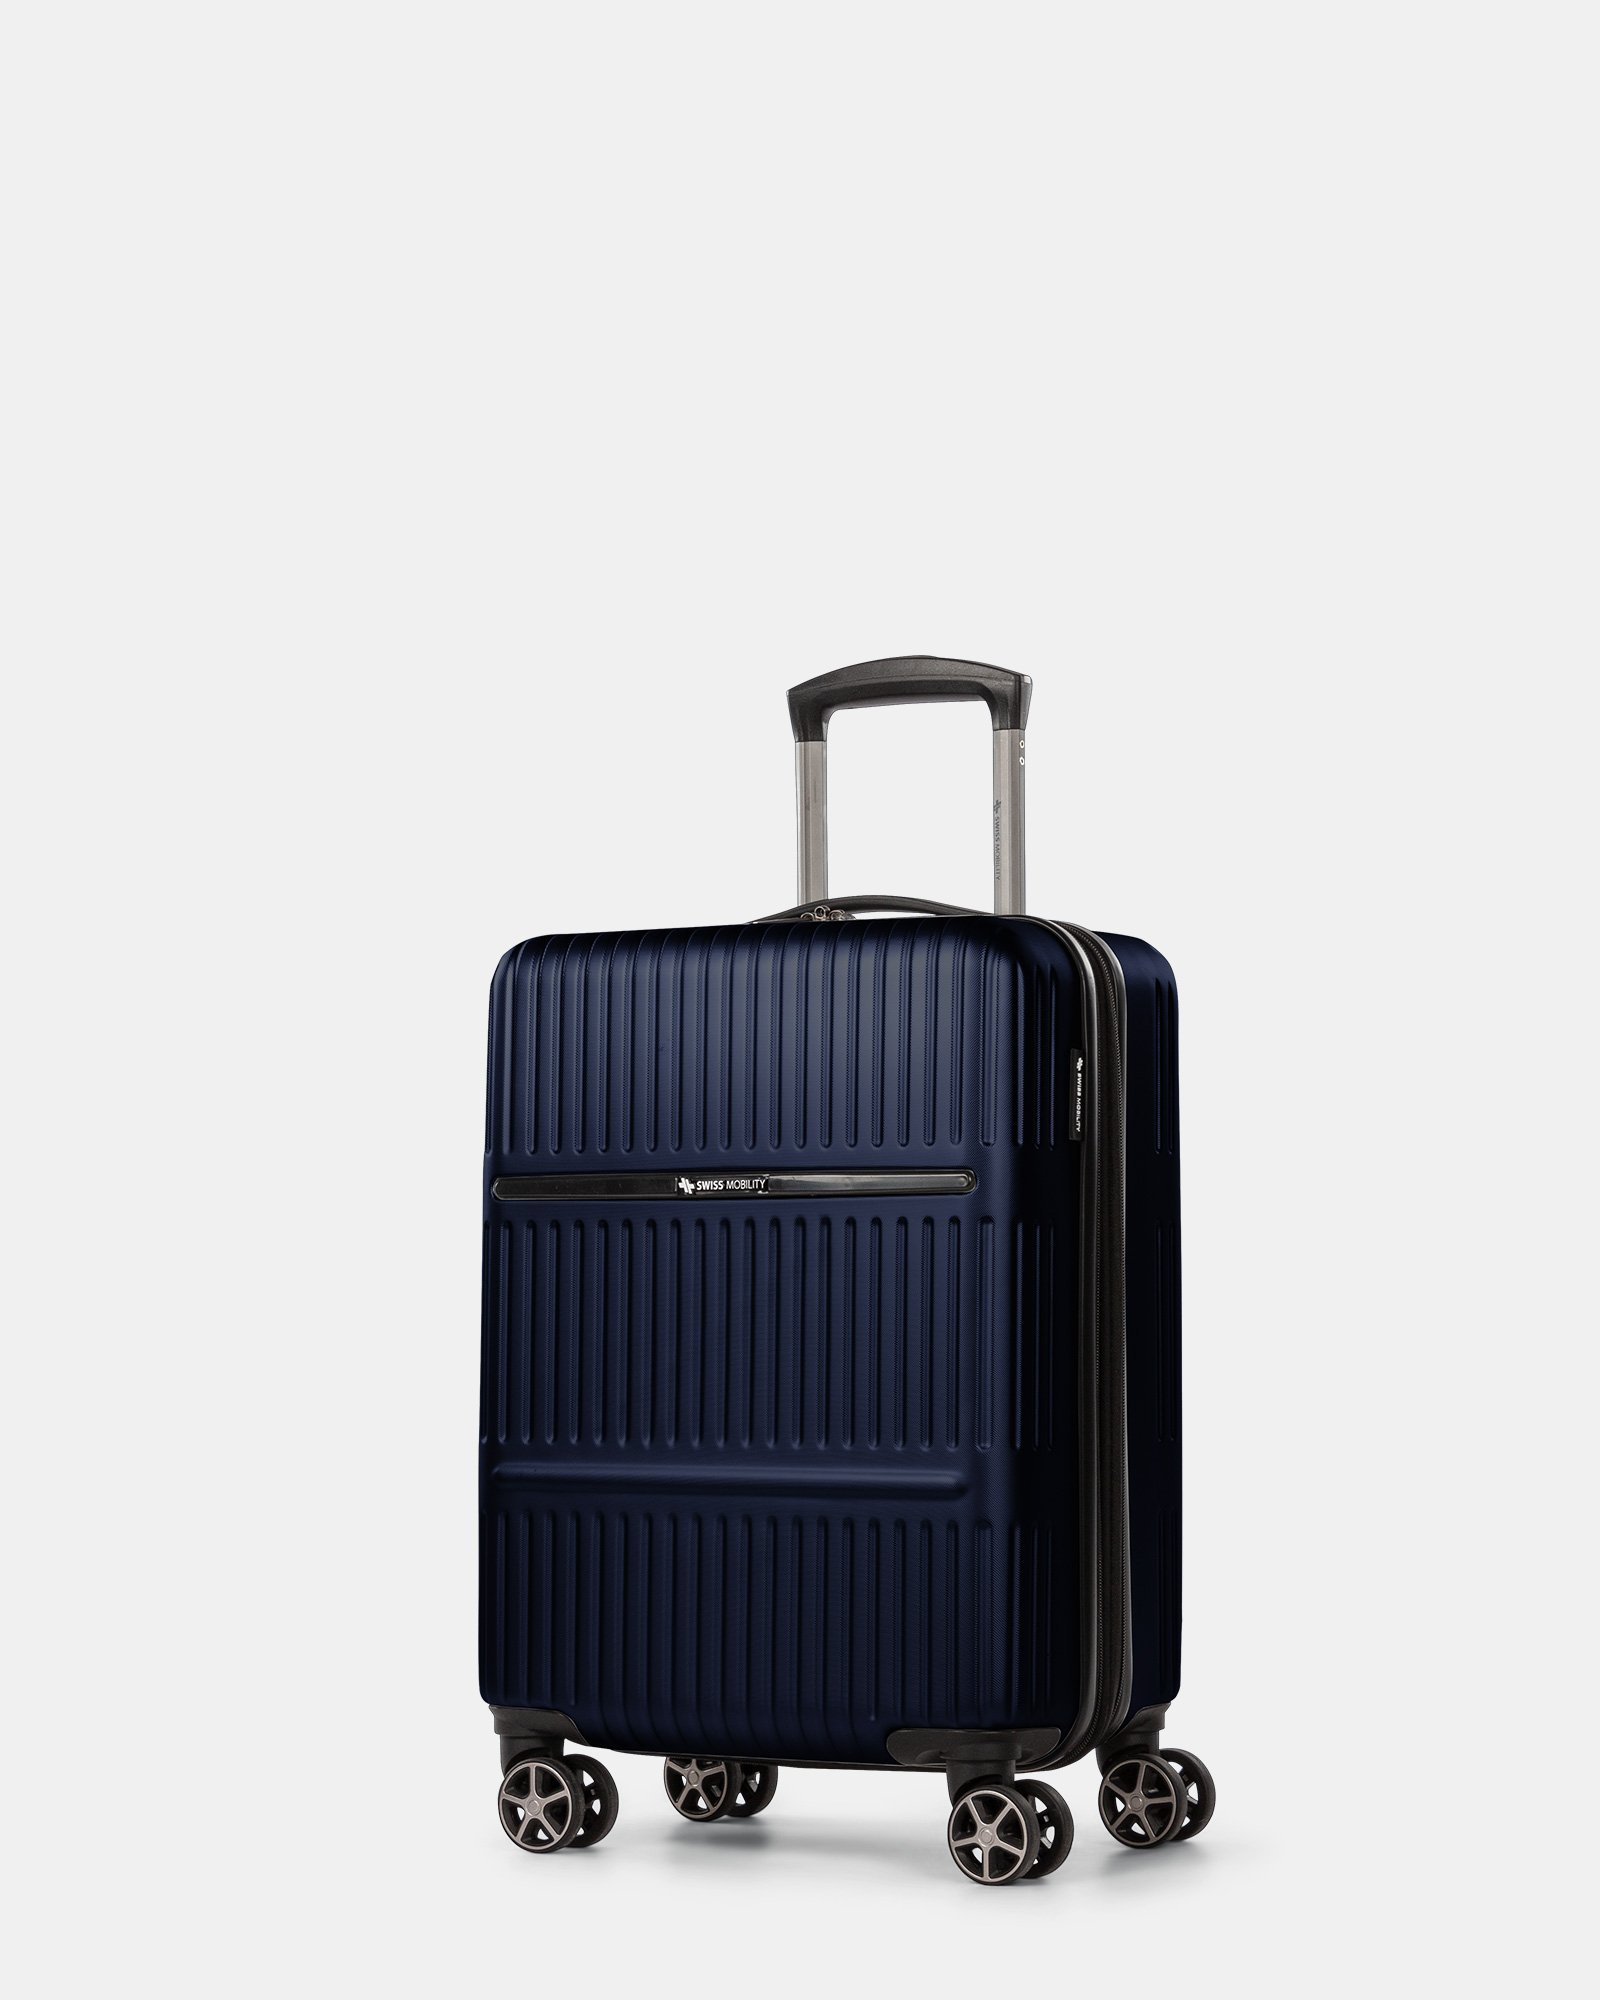 Highway - Lightweight Hardside Carry-on with double spinner wheels (8 wheels) - Blue - Swiss Mobility - Zoom